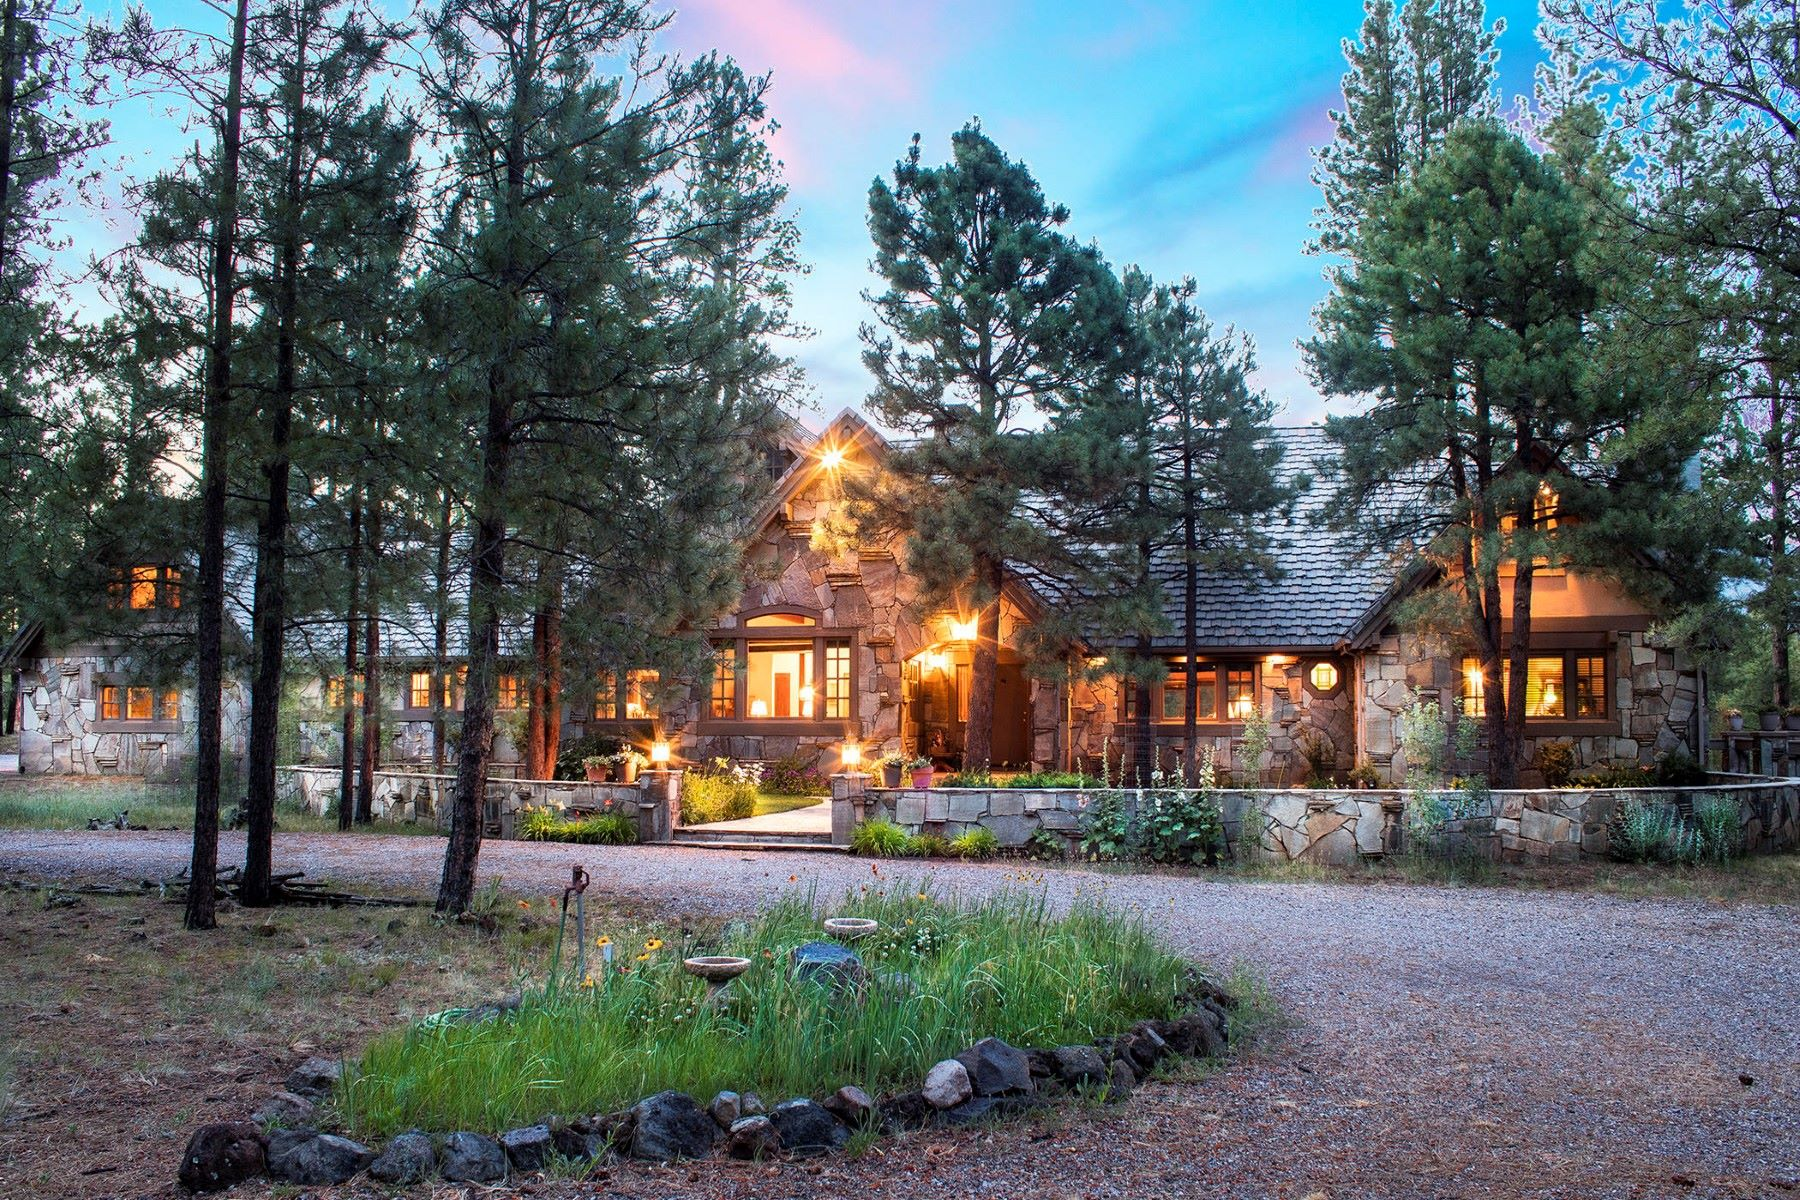 Single Family Home for Sale at Extraordinary Land with an exceptional home situated on 26 acres. 4100 Hidden Hollow RD, Flagstaff, Arizona, 86001 United States